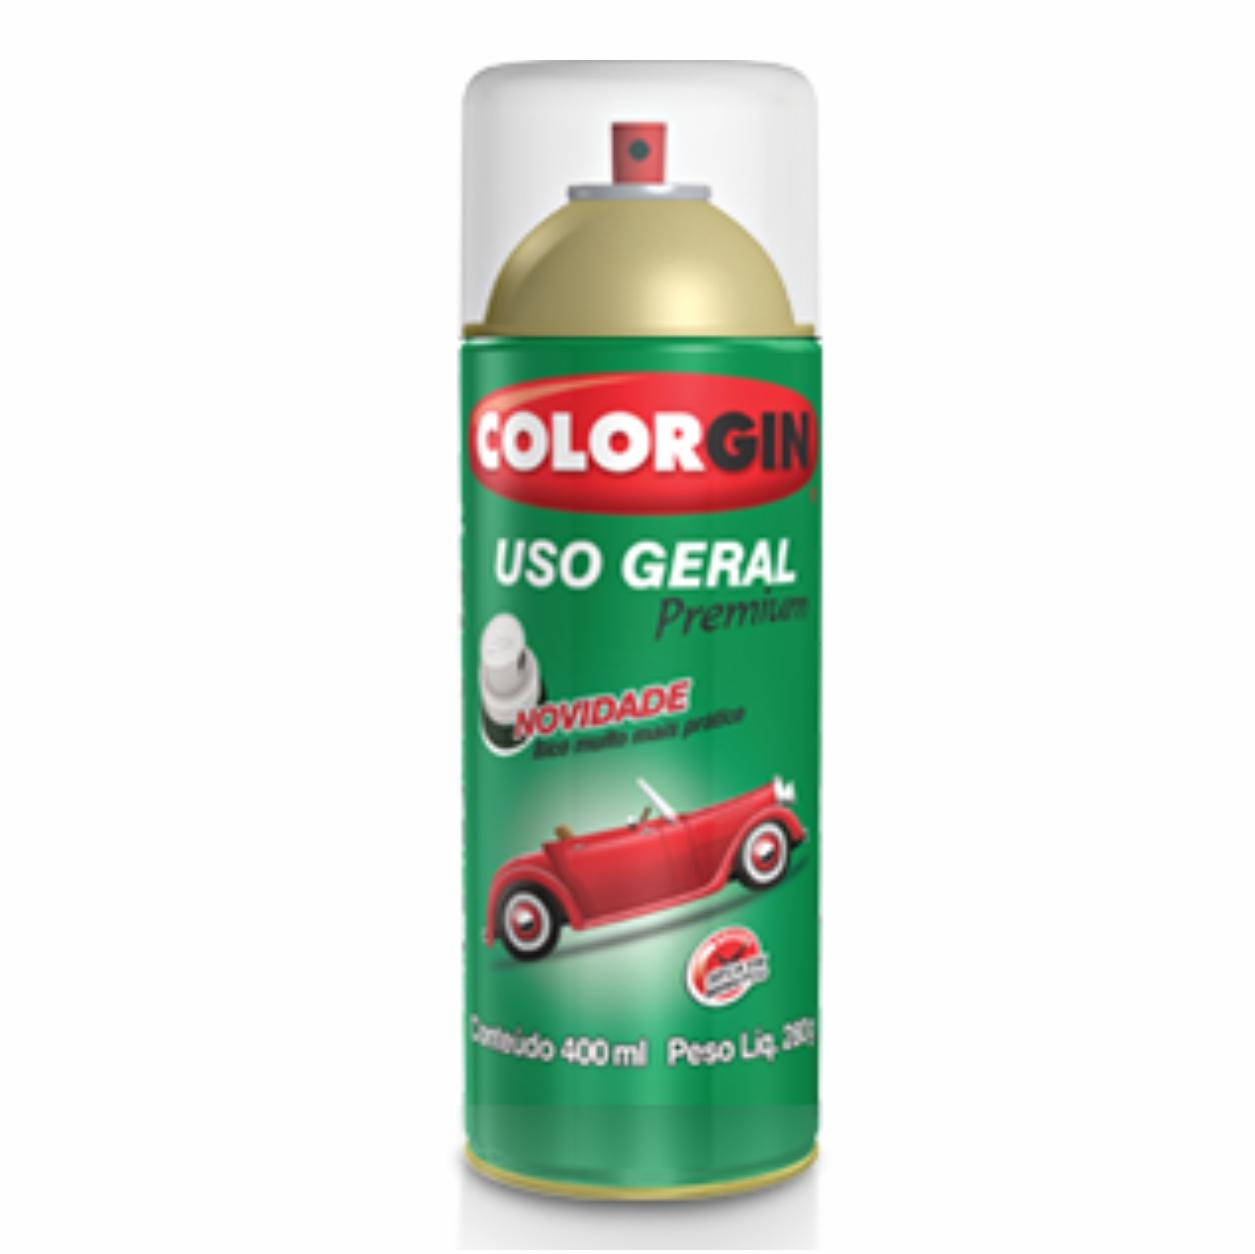 Spray Verniz Colorgin 400ml/280g - Incolor Uso Geral Premium